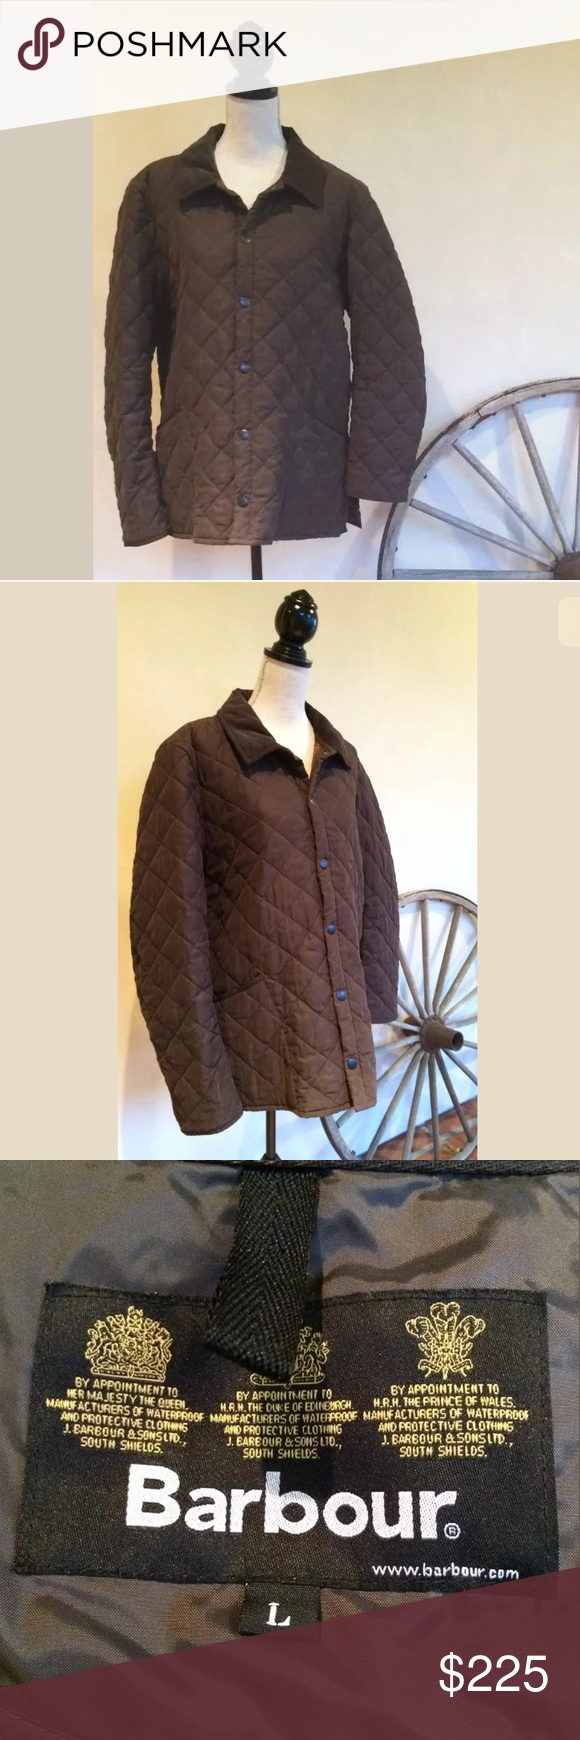 BARBOUR British Quilted Hunting Barn Jacket L NICE BARBOUR ...